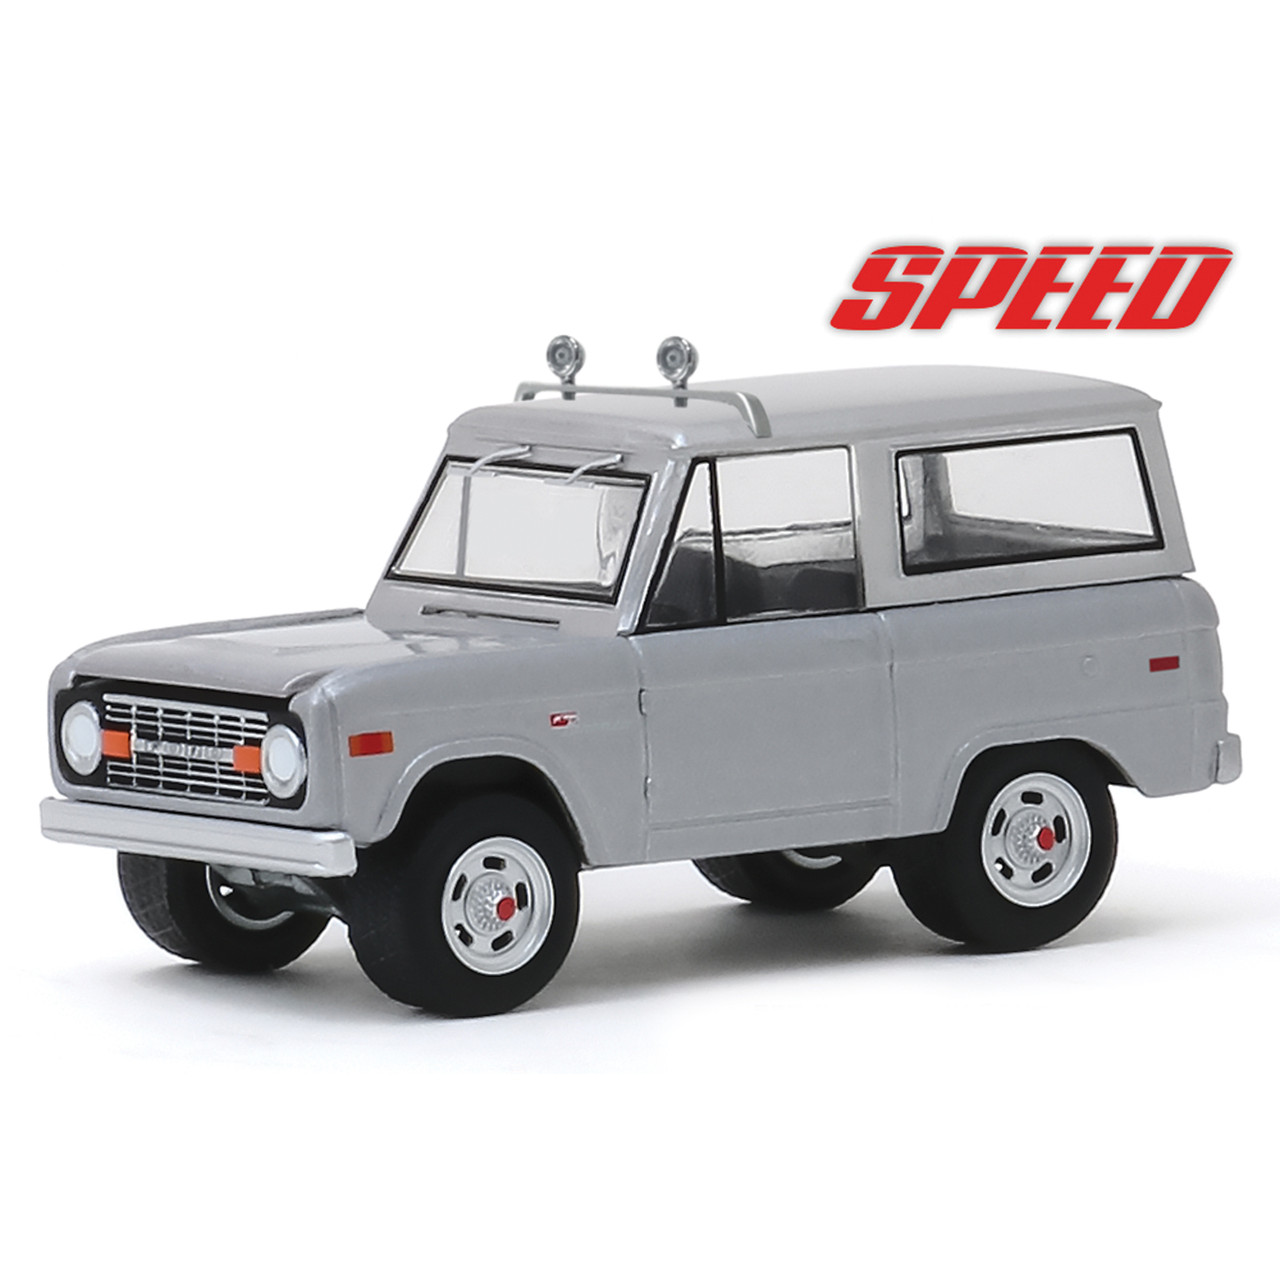 Ford bronco 1970 blanco Speed Jack travens coche modelo 1:18 GreenLight Collectibles